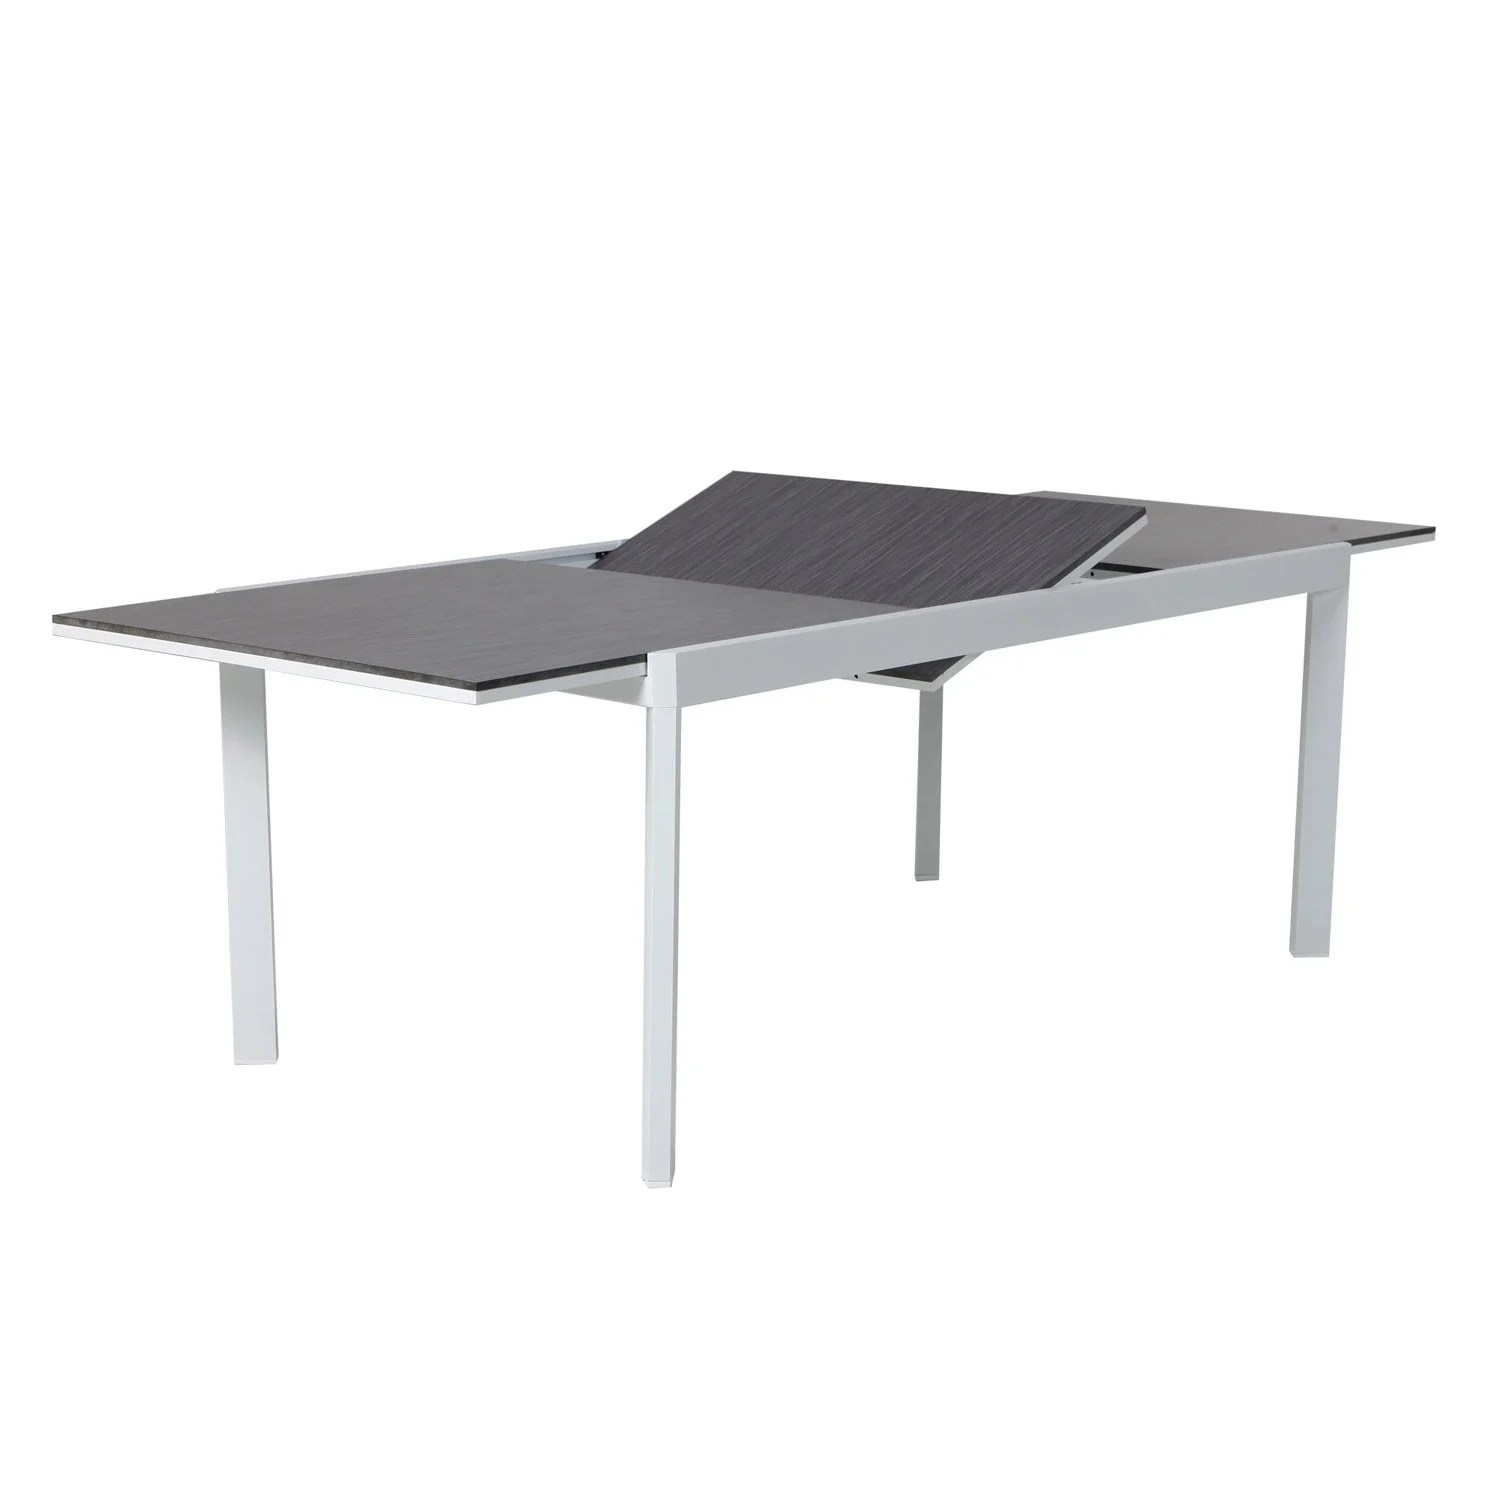 Table De Jardin Pvc Gris | Salon De Jardin Gris Anthracite Pvc Best ...